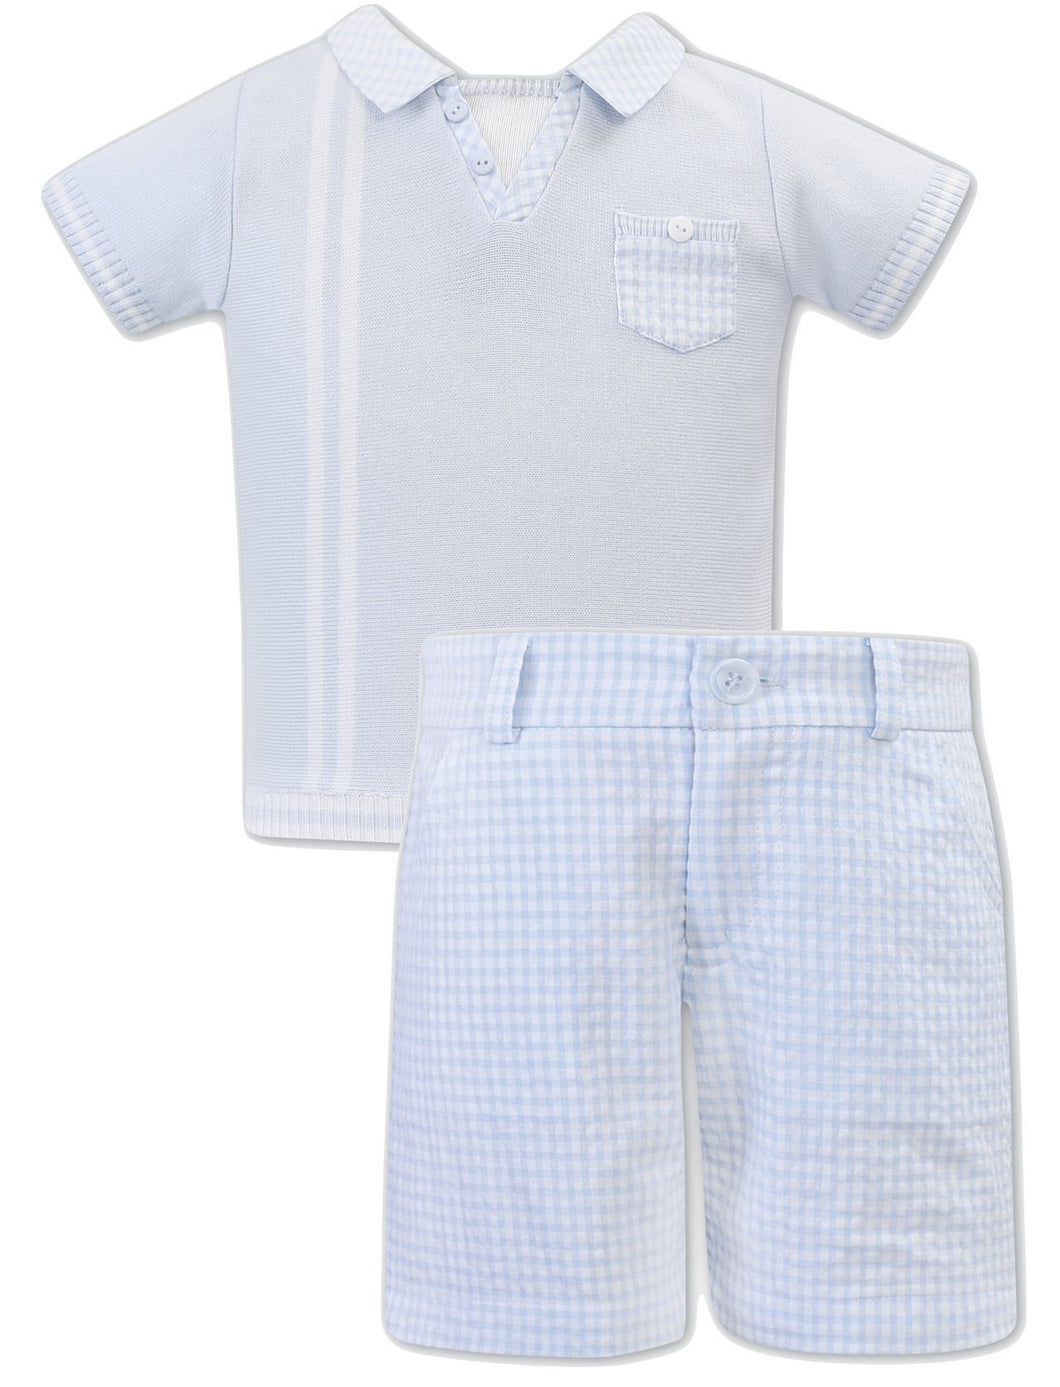 Boys Shorts Set, Short Sleeved Polo Top with Contrasting Collar and Breast Pocket, Stripe Detail, Checked Shorts with Adjustable Waist